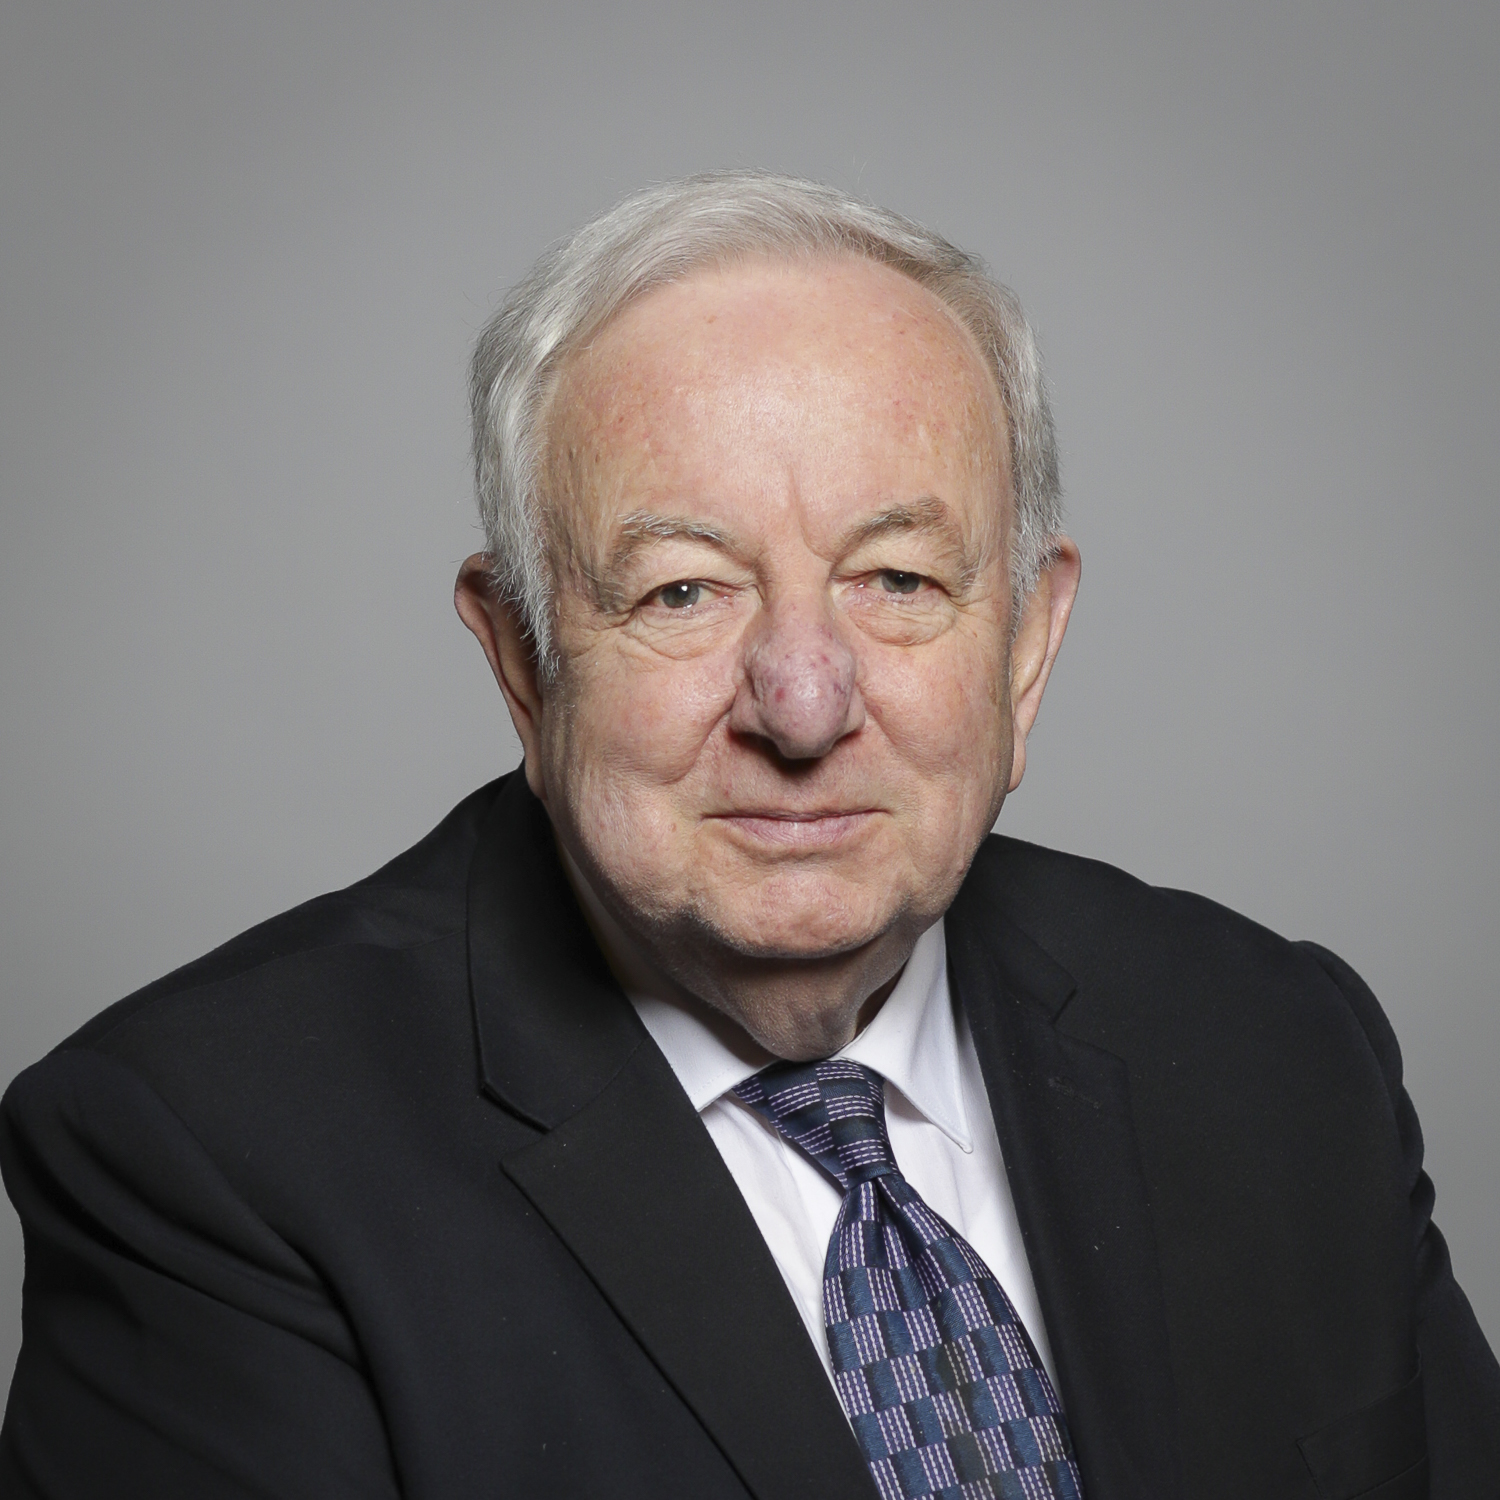 Lord Foulkes of Cumnock Portrait